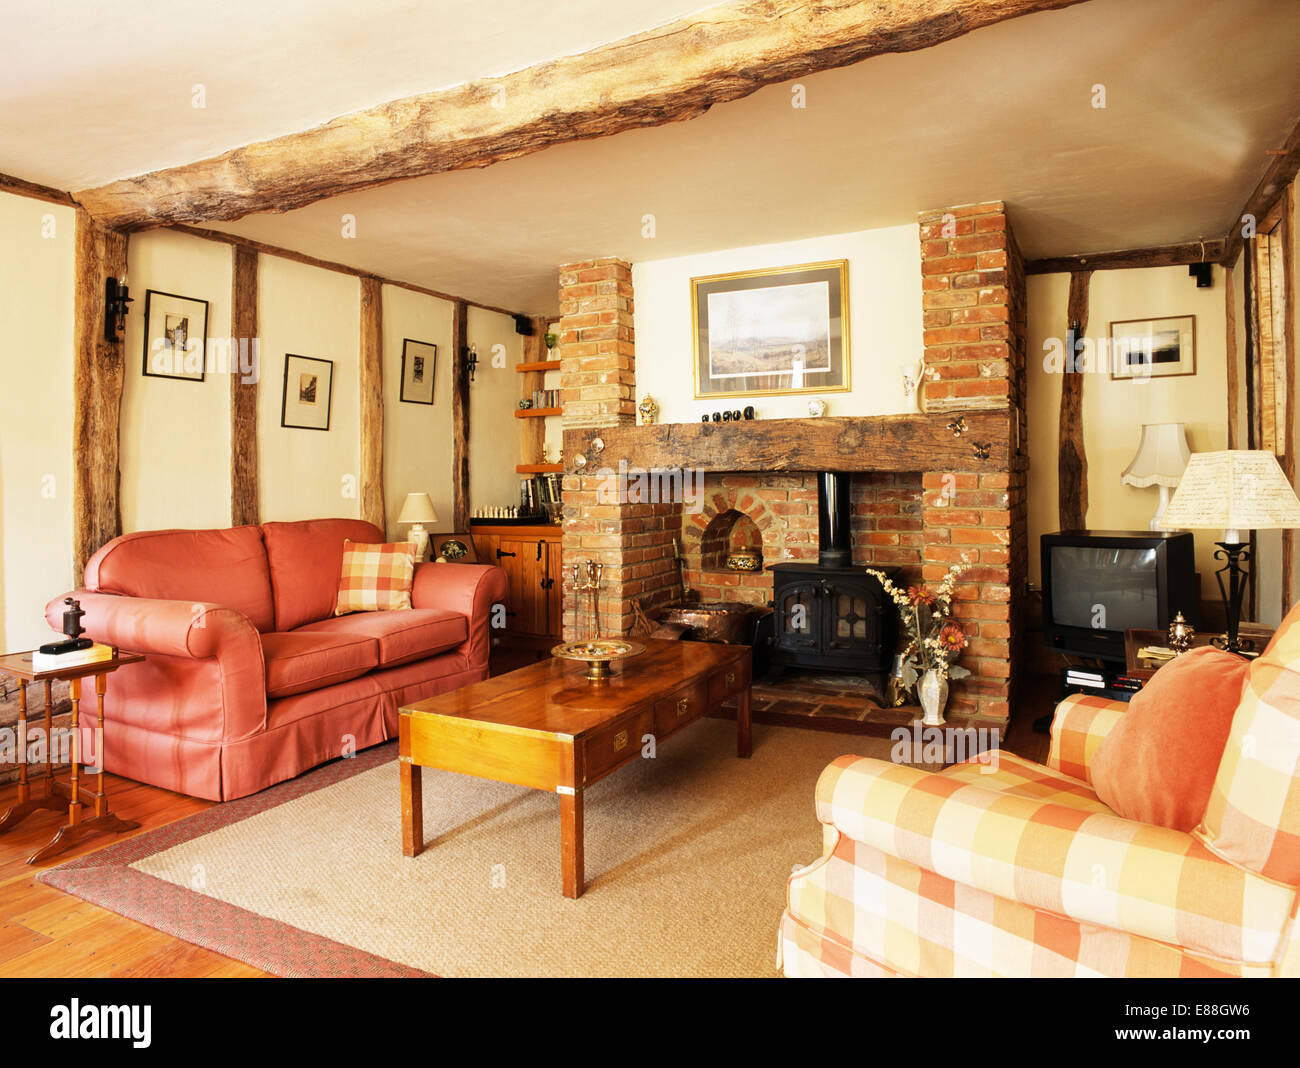 Peach Sofa In Small Barn Conversion Living Room With Coffee Table Front Of Wood Burning Stove Brick Fireplace